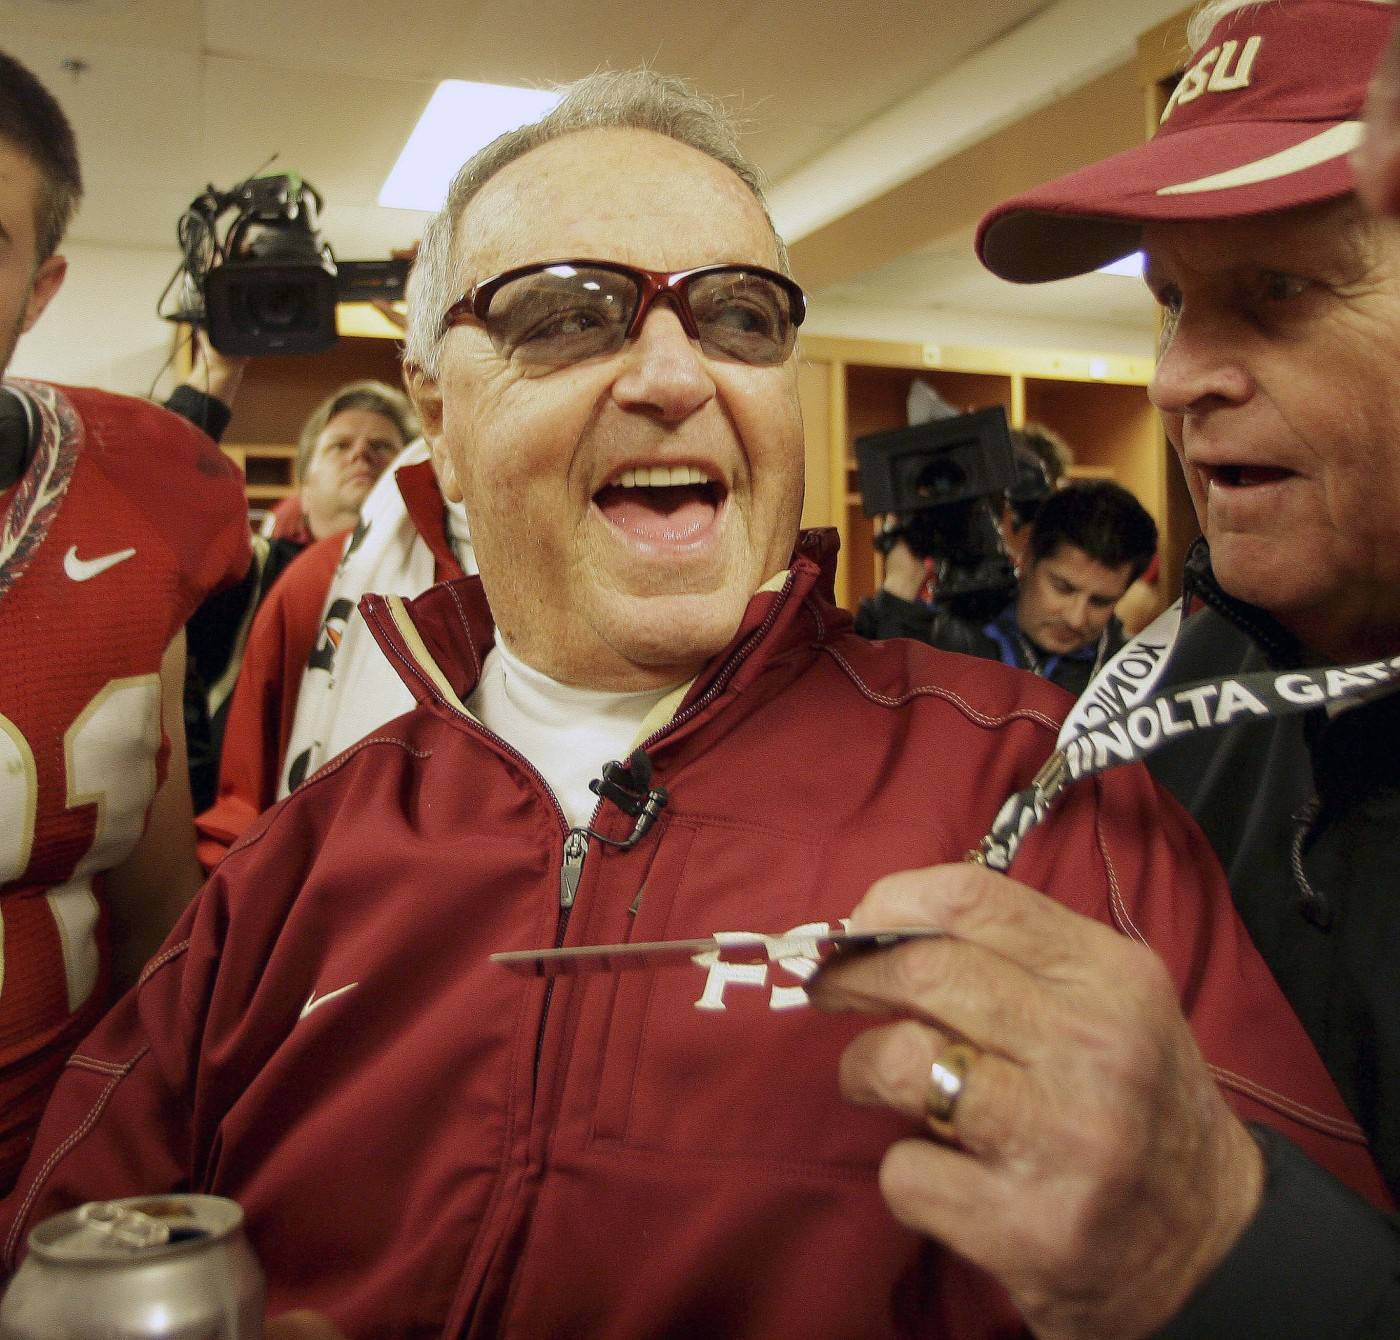 Florida State head coach Bobby Bowden is all smiles as he visits with people in the locker room after their 33-21 win over West Virginia in the Gator Bowl NCAA college football game, Friday, Jan. 1, 2010, in Jacksonville, Fla. (AP Photo/Phil Coale)